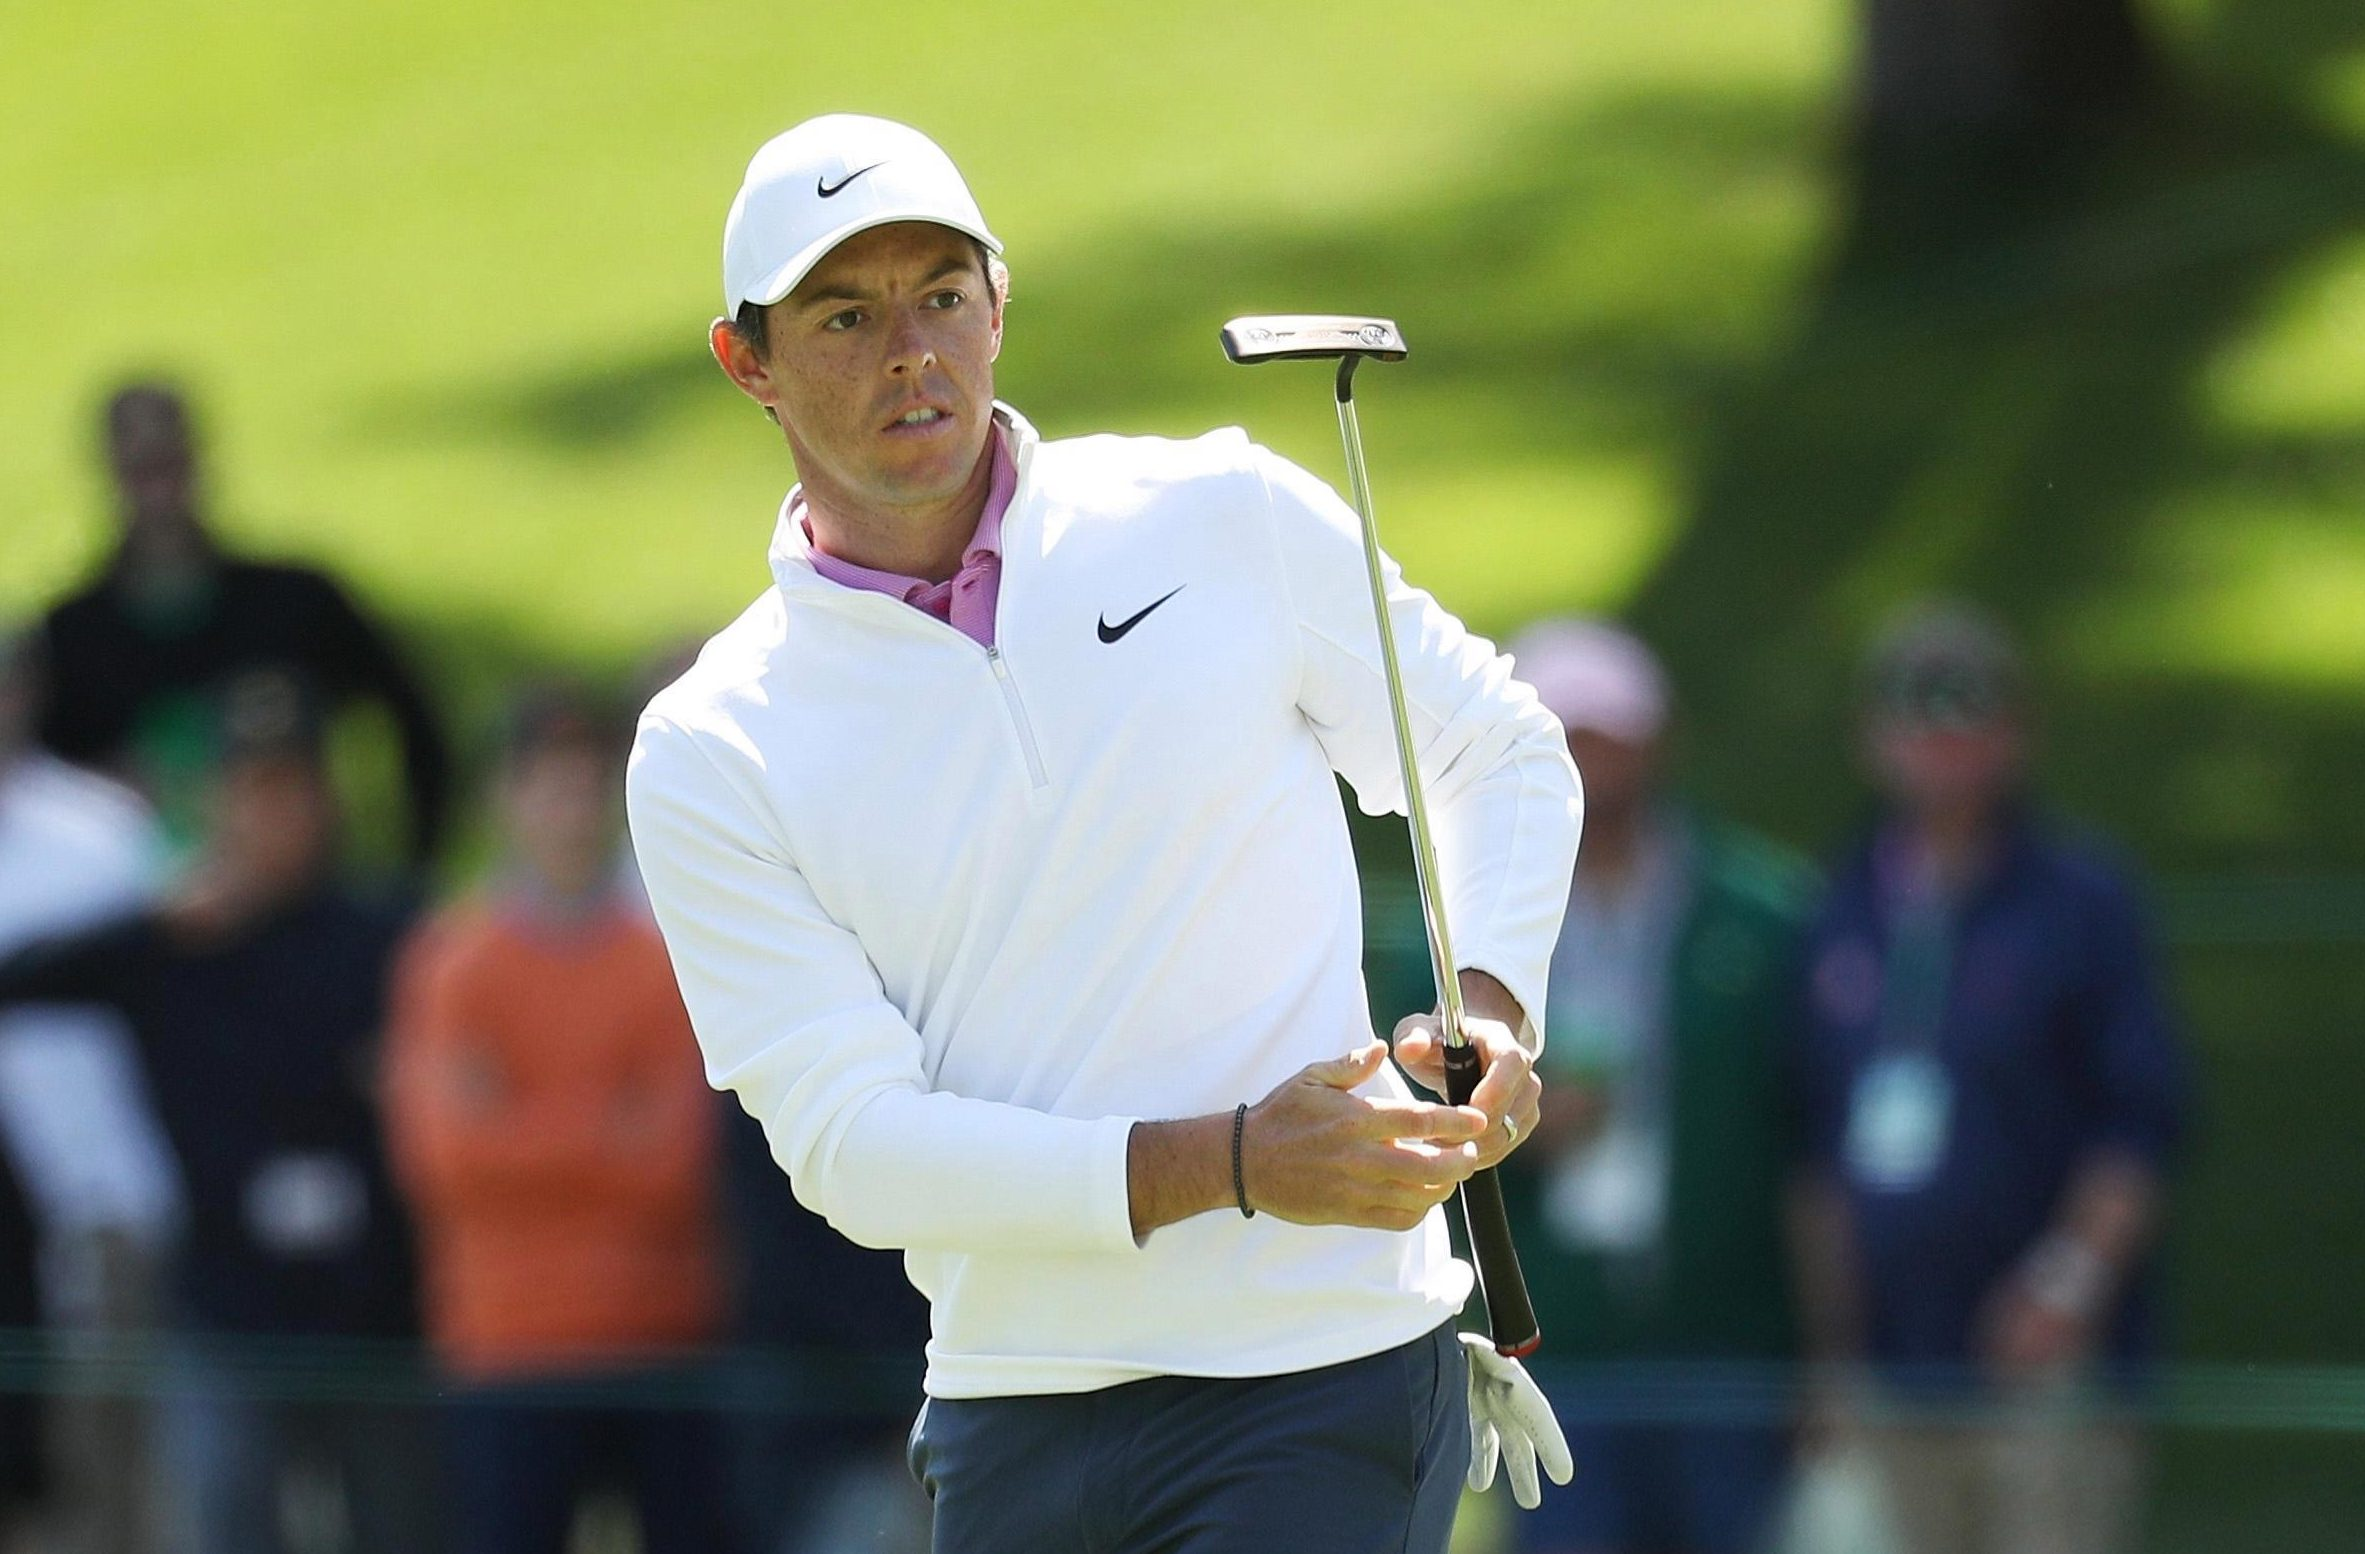 Rory McIlroy suffered more heartbreak on a Sunday at Augusta